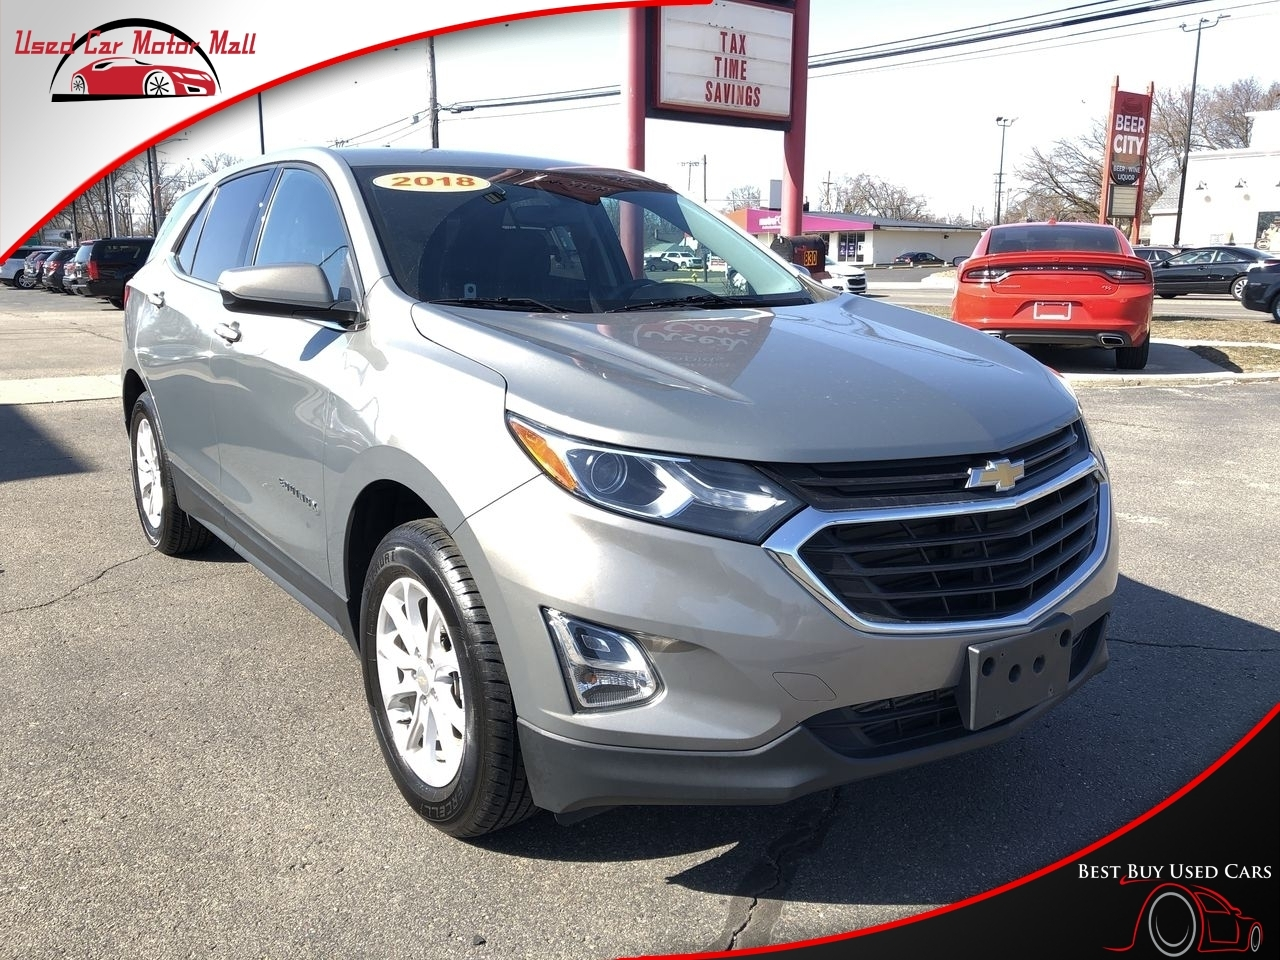 2016 Chevrolet Trax LT AWD, 228573, Photo 1